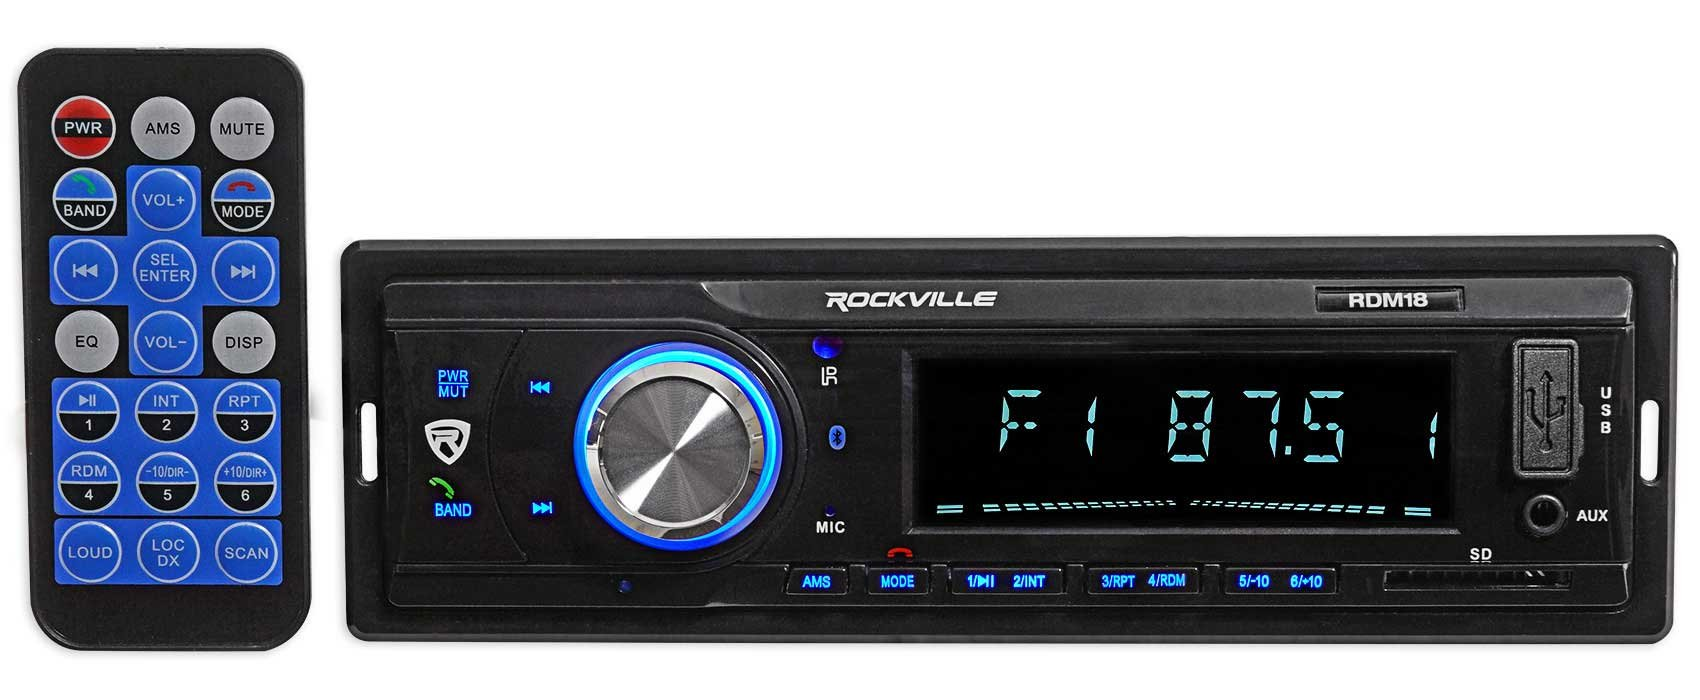 Car Digital Media Bluetooth AM/FM/MP3 USB/SD Receiver For 2003-2007 Honda Accord by Rockville (Image #2)